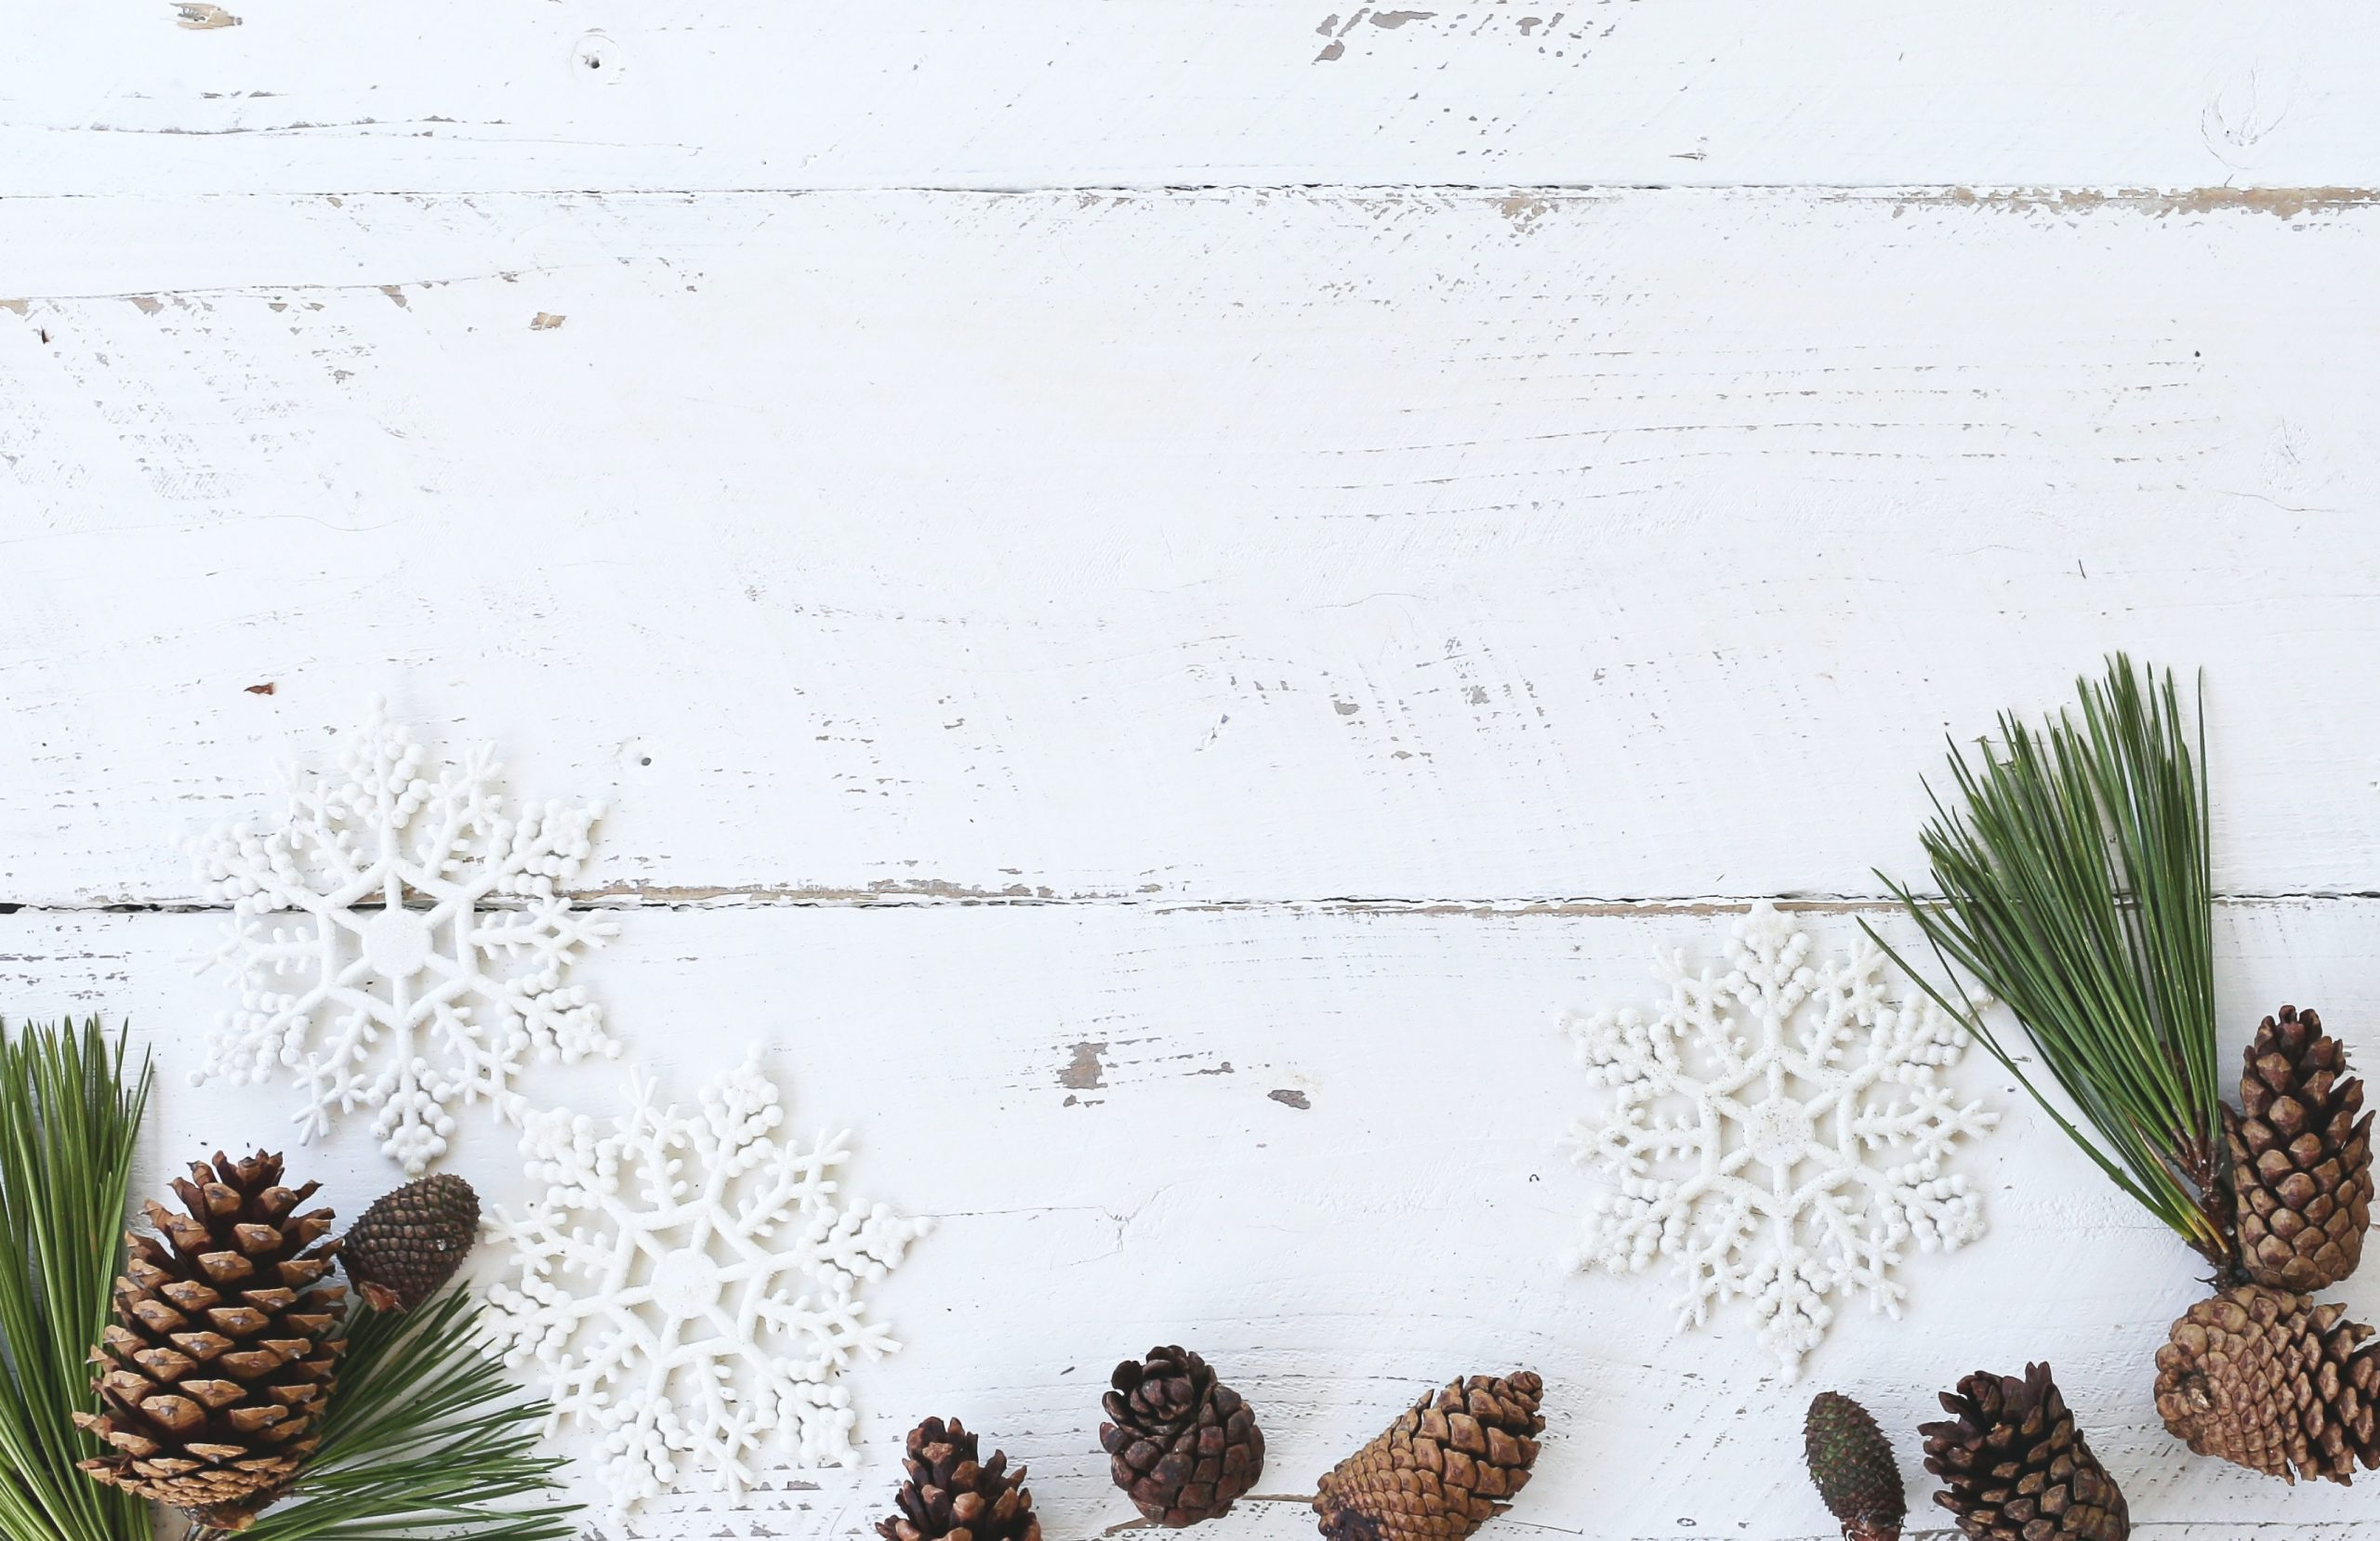 Pine cones and snowflakes on a white background.